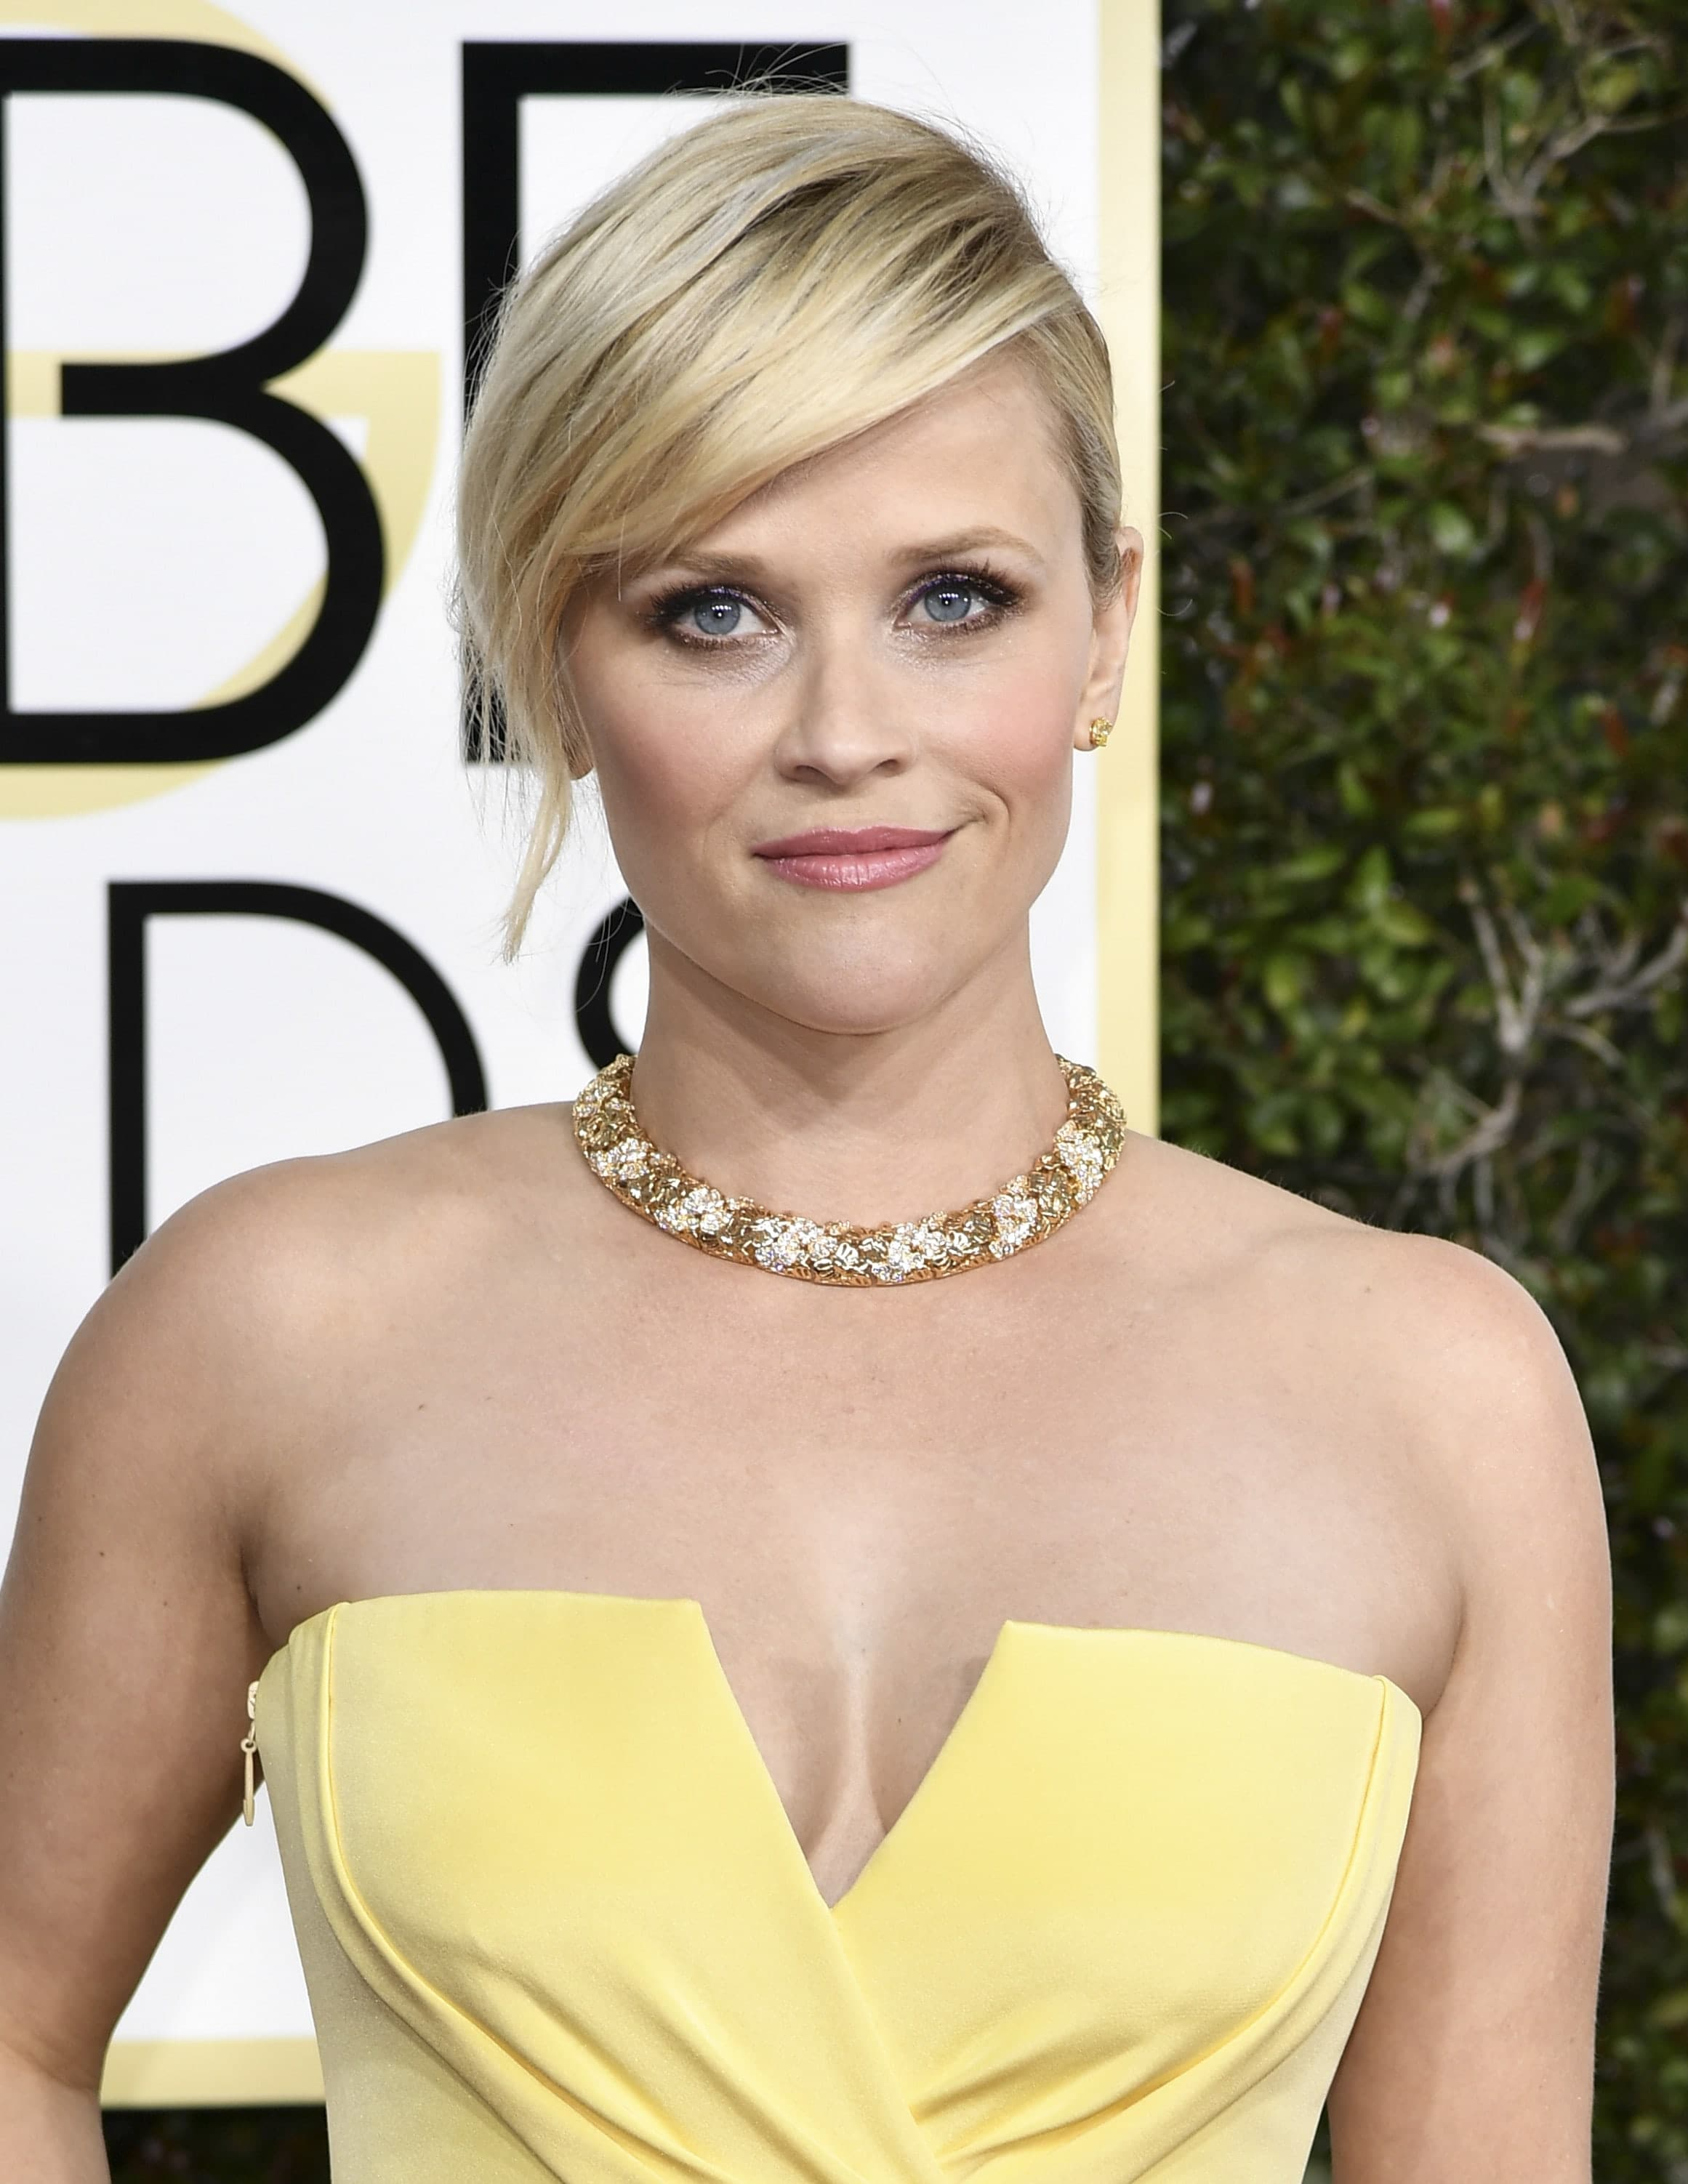 Reese Witherspoon with side fringe wearing yellow strapless dress